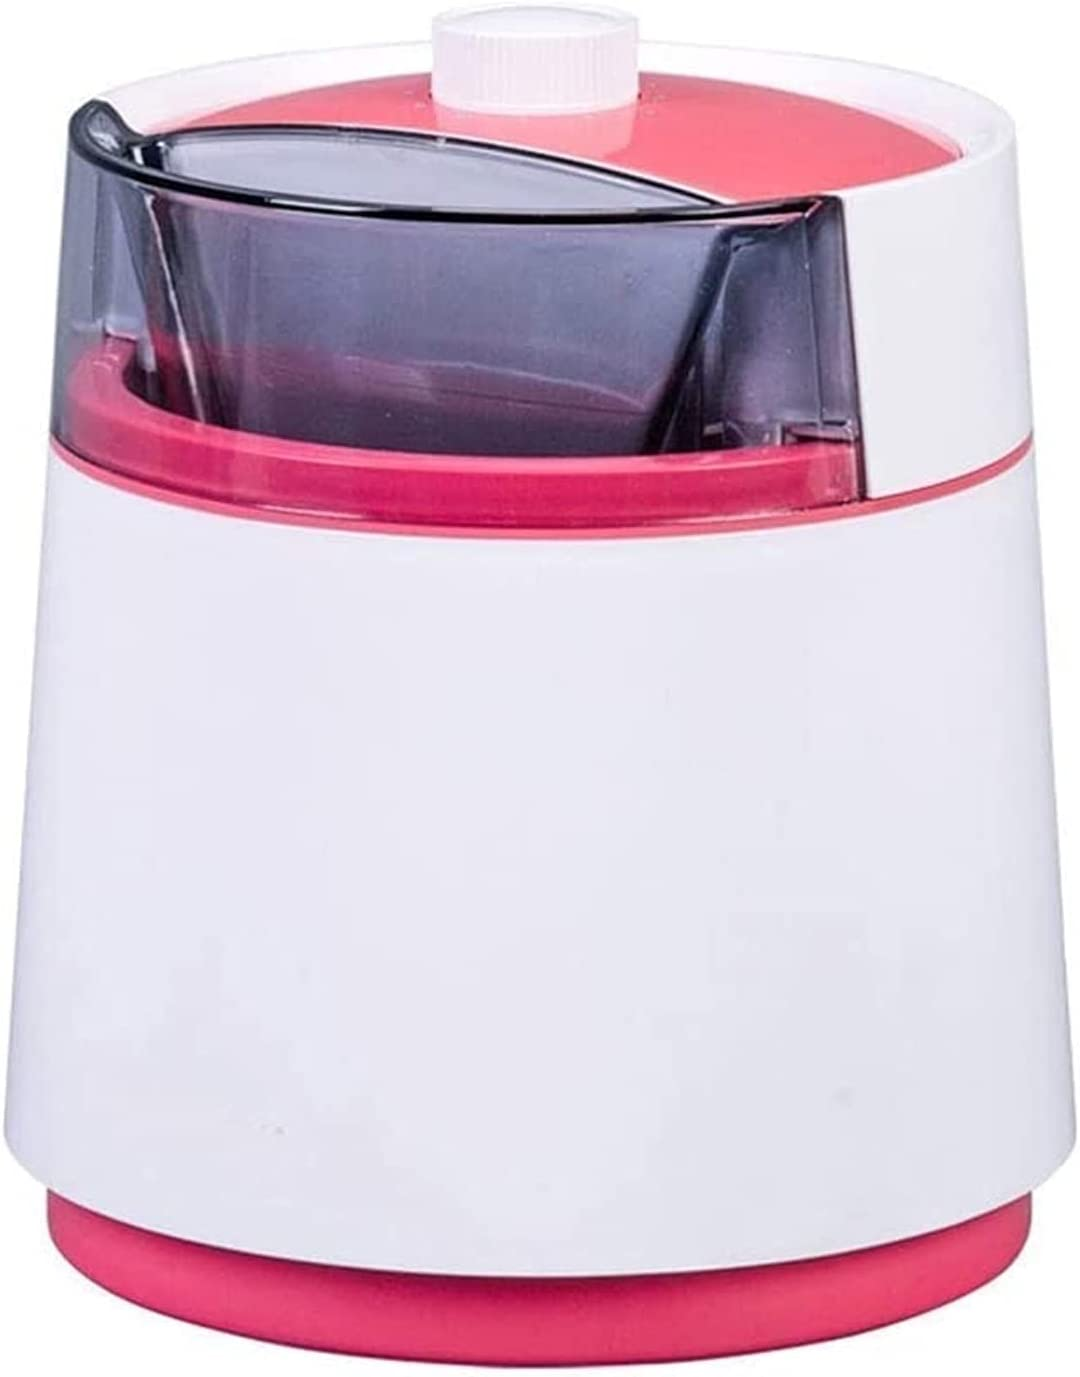 Ice Special price for a limited time Cream and Gelato Maker Detacha Frozen Yoghurt Machine Sorbet Cheap bargain